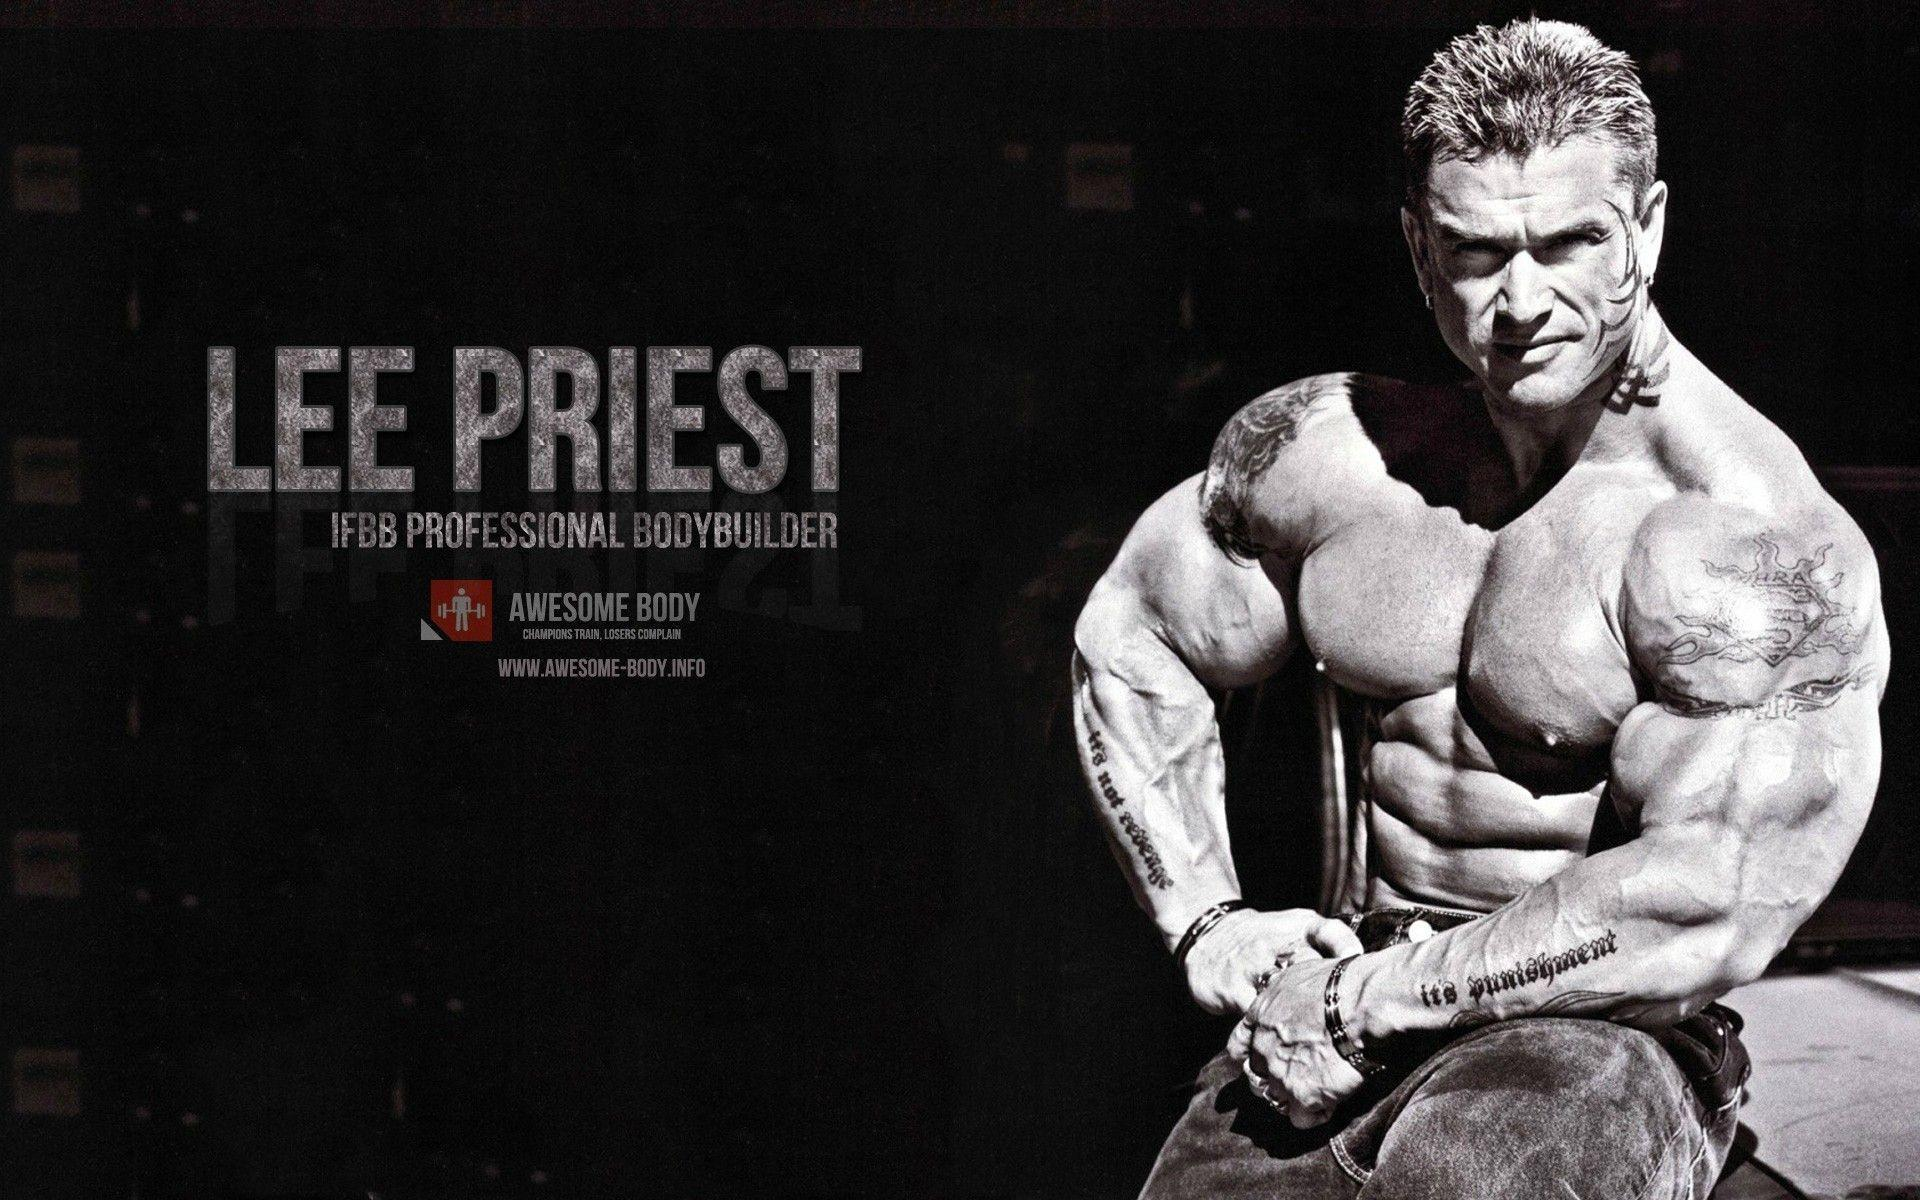 Ли прист (lee priest) - биография австралийского супермена